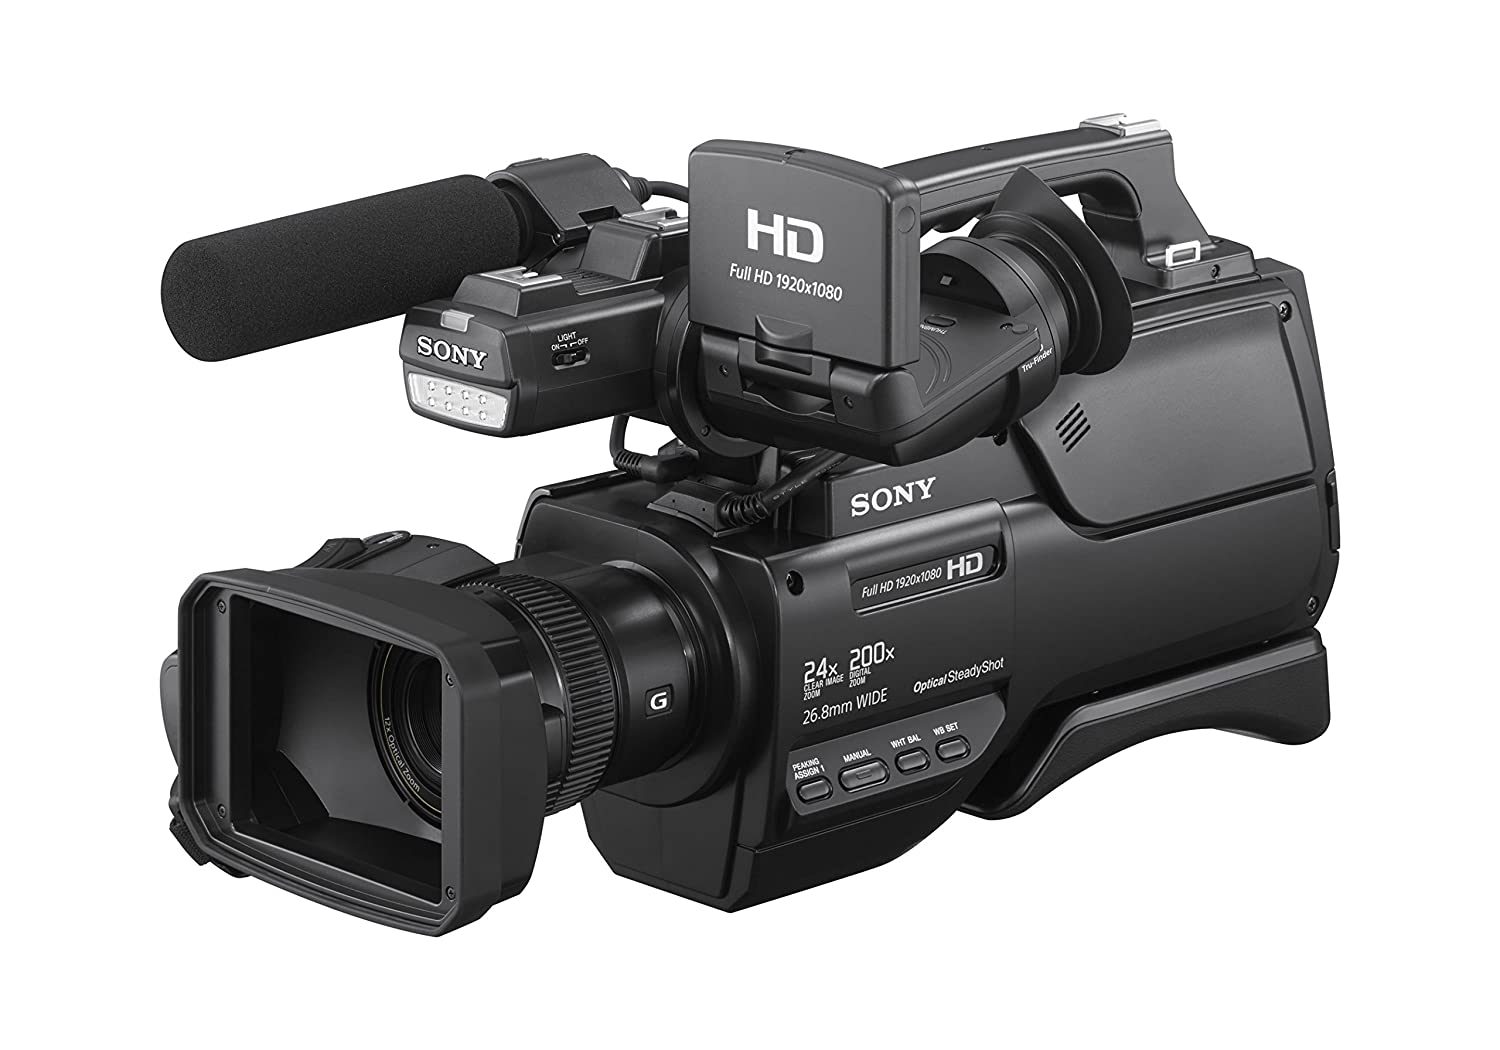 Sony HXRMC2500 Shoulder Mount AVCHD Camcorder with 3-Inch LCD (Black) (Discontinued by Manufacturer)